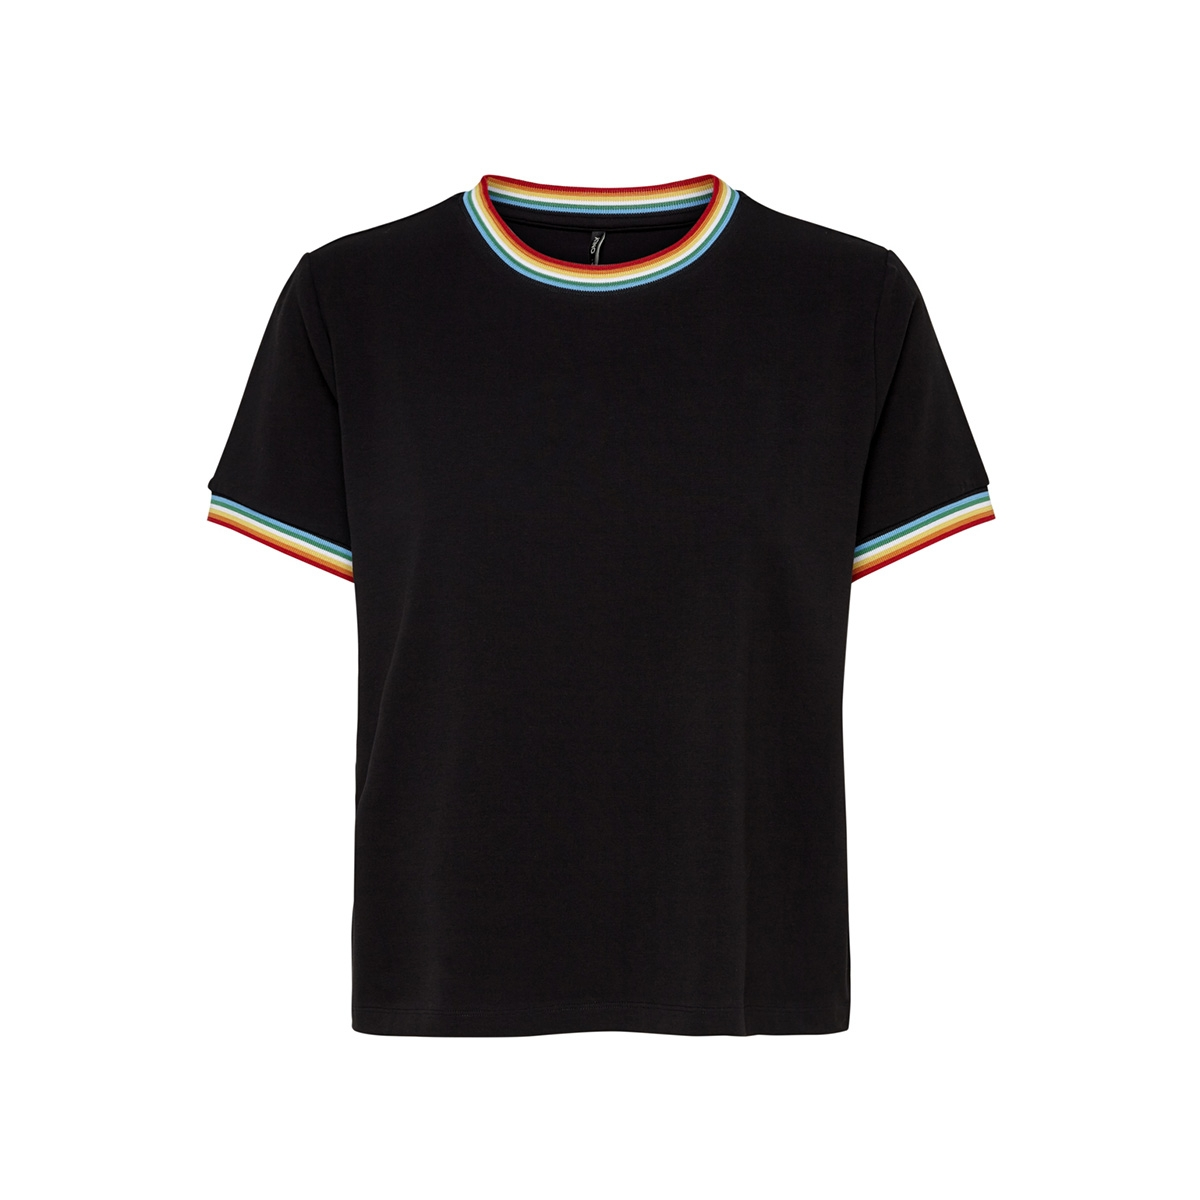 onlrainbow s/s o-neck top jrs 15178968 only t-shirt black/rainbow ta